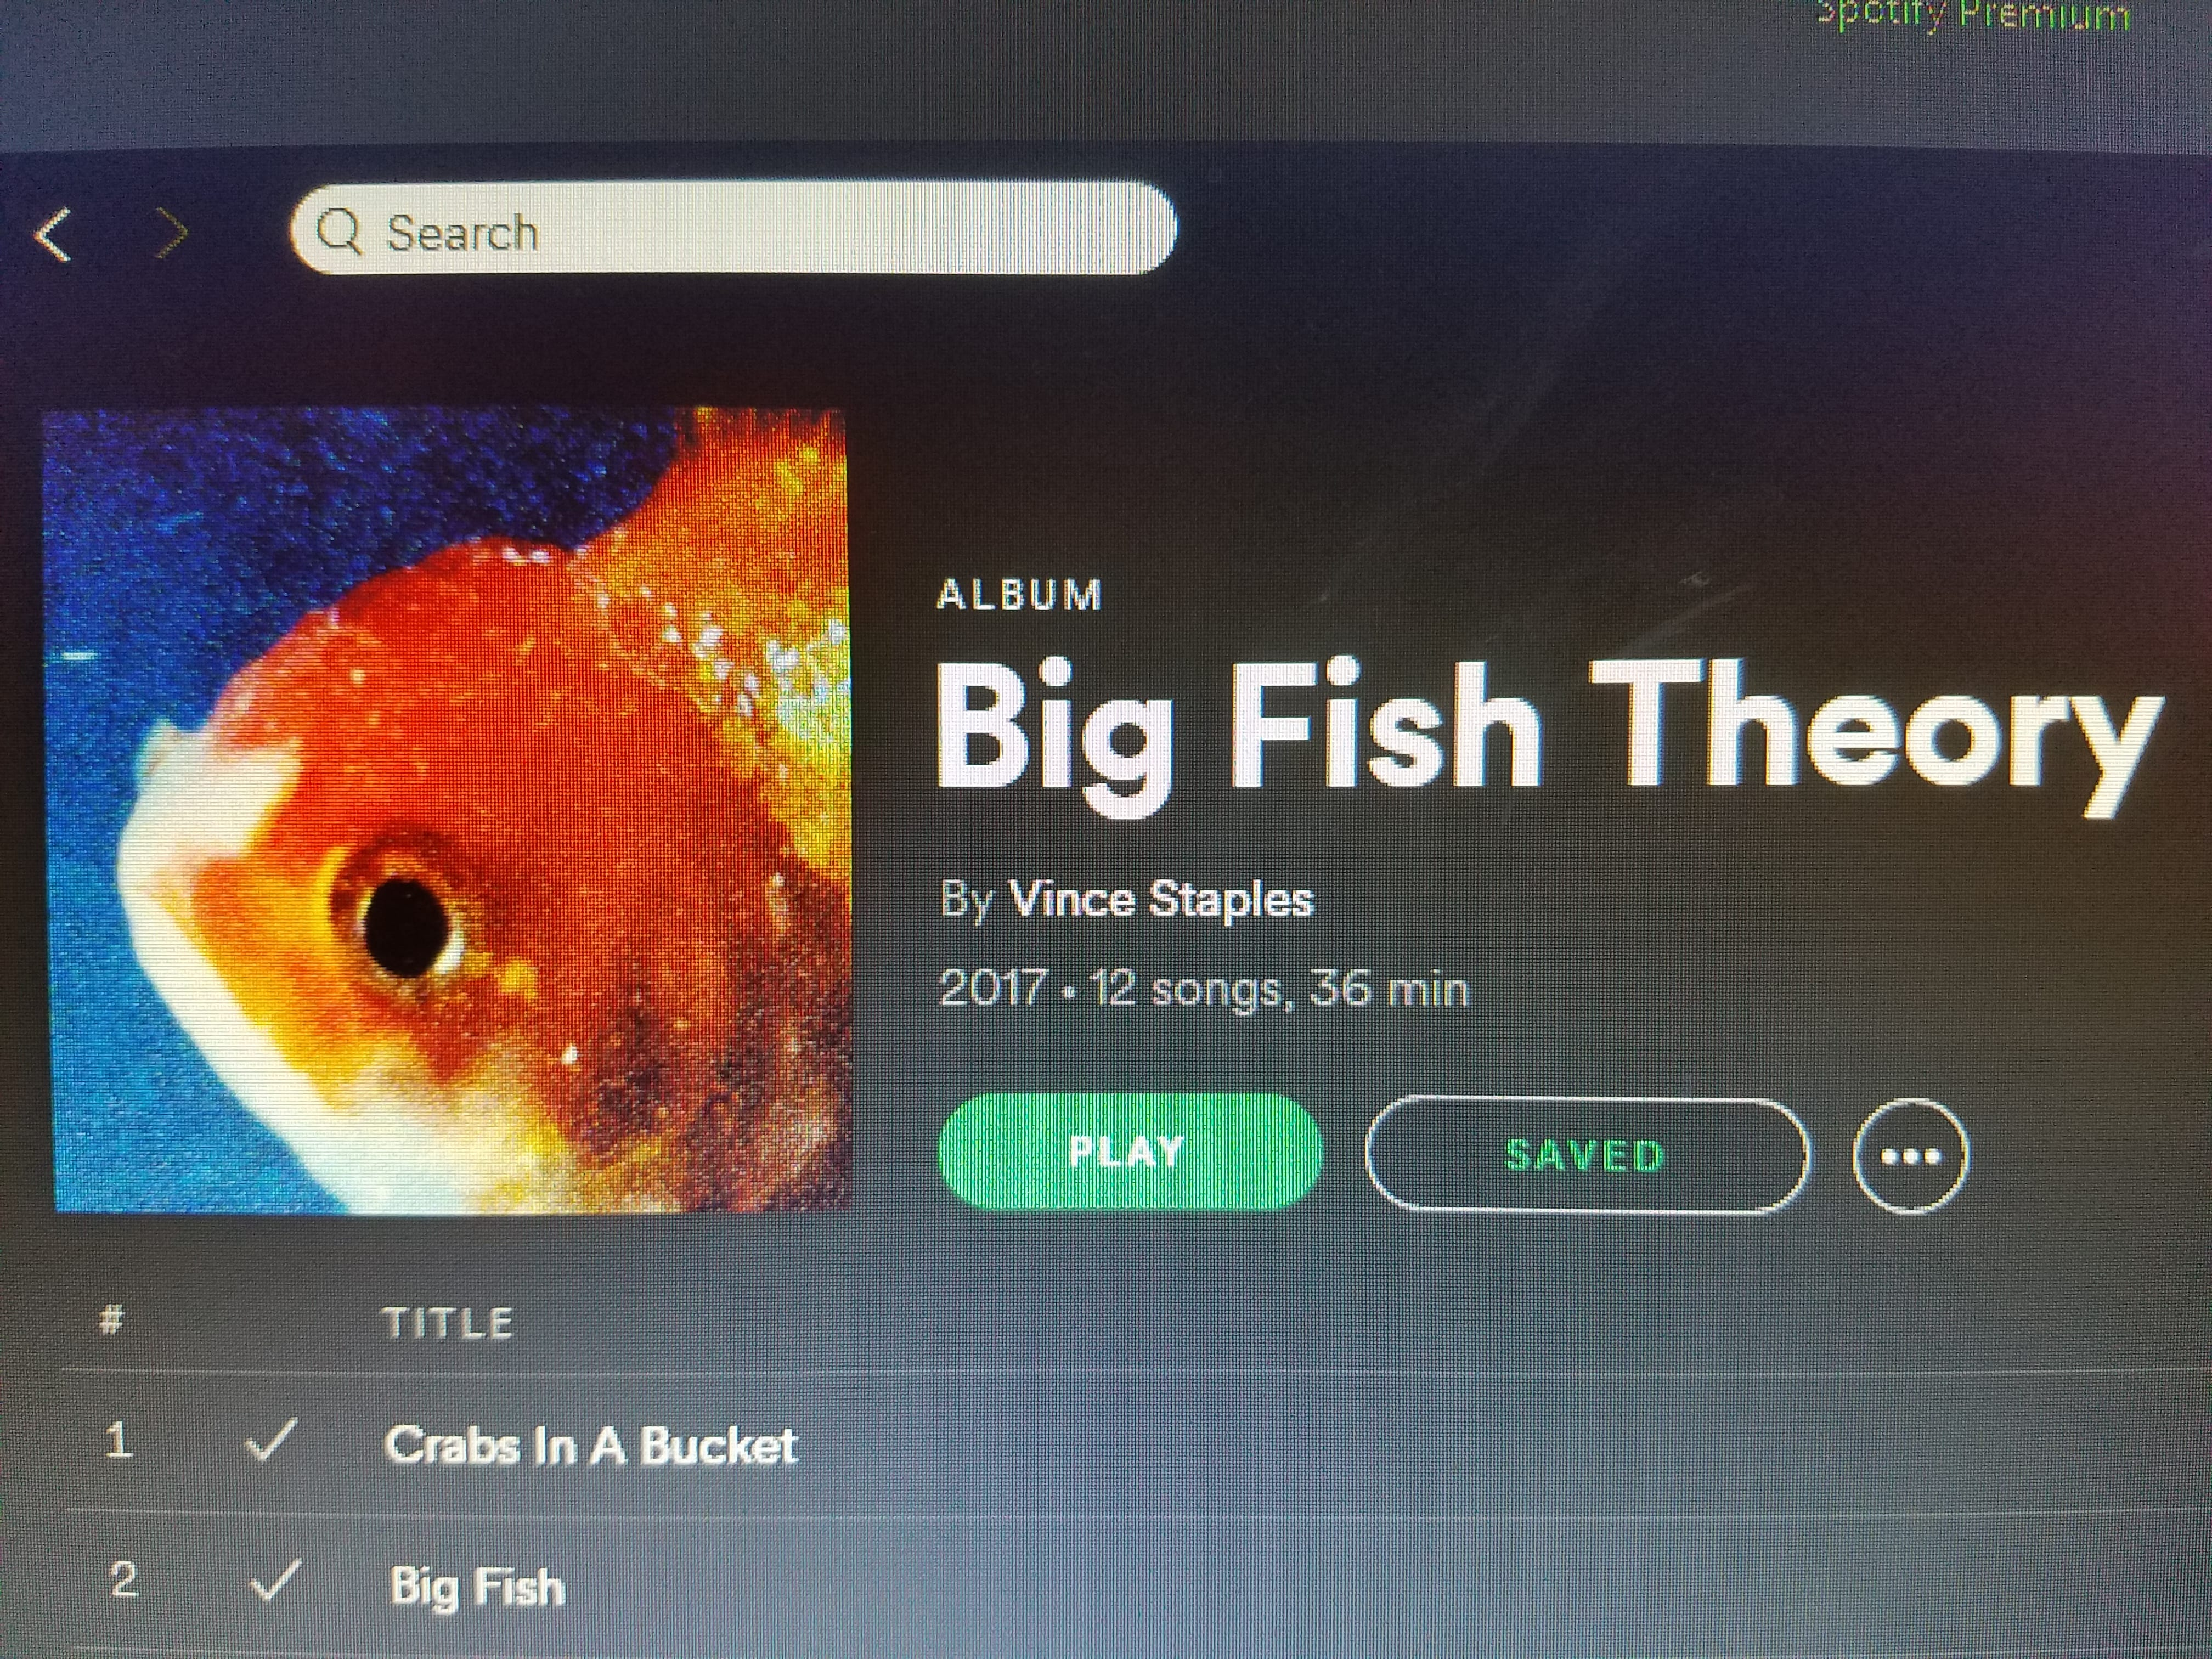 "Big Fish Theory"" by Vince Staples 